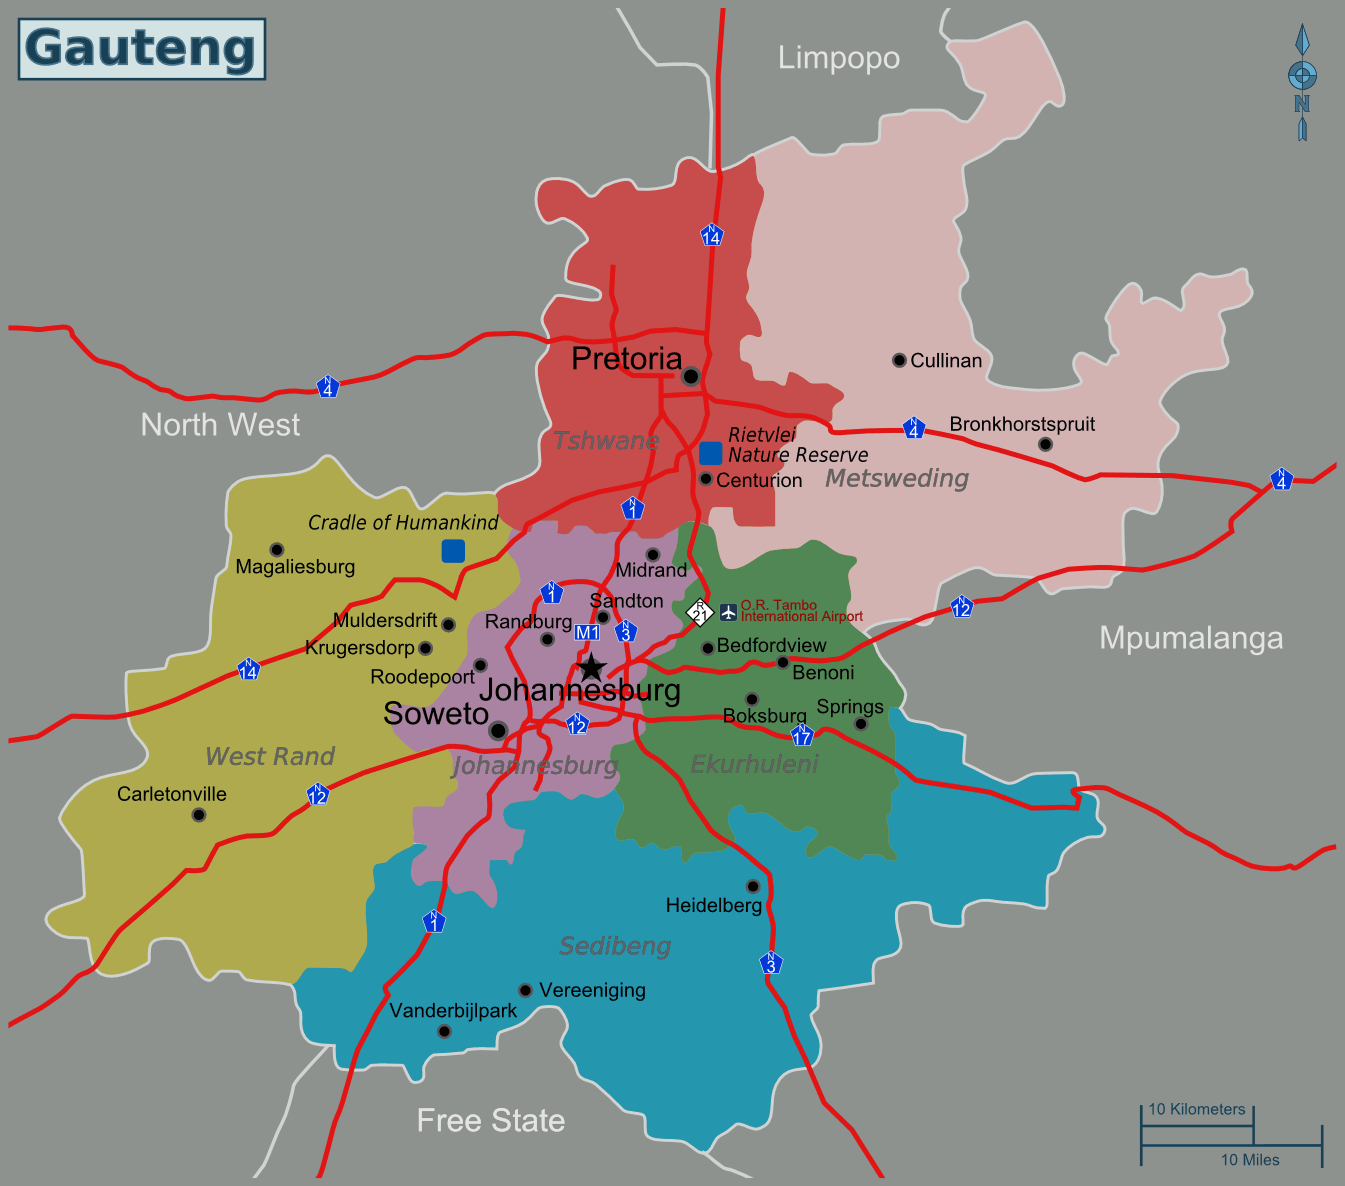 South Africa Gauteng Map